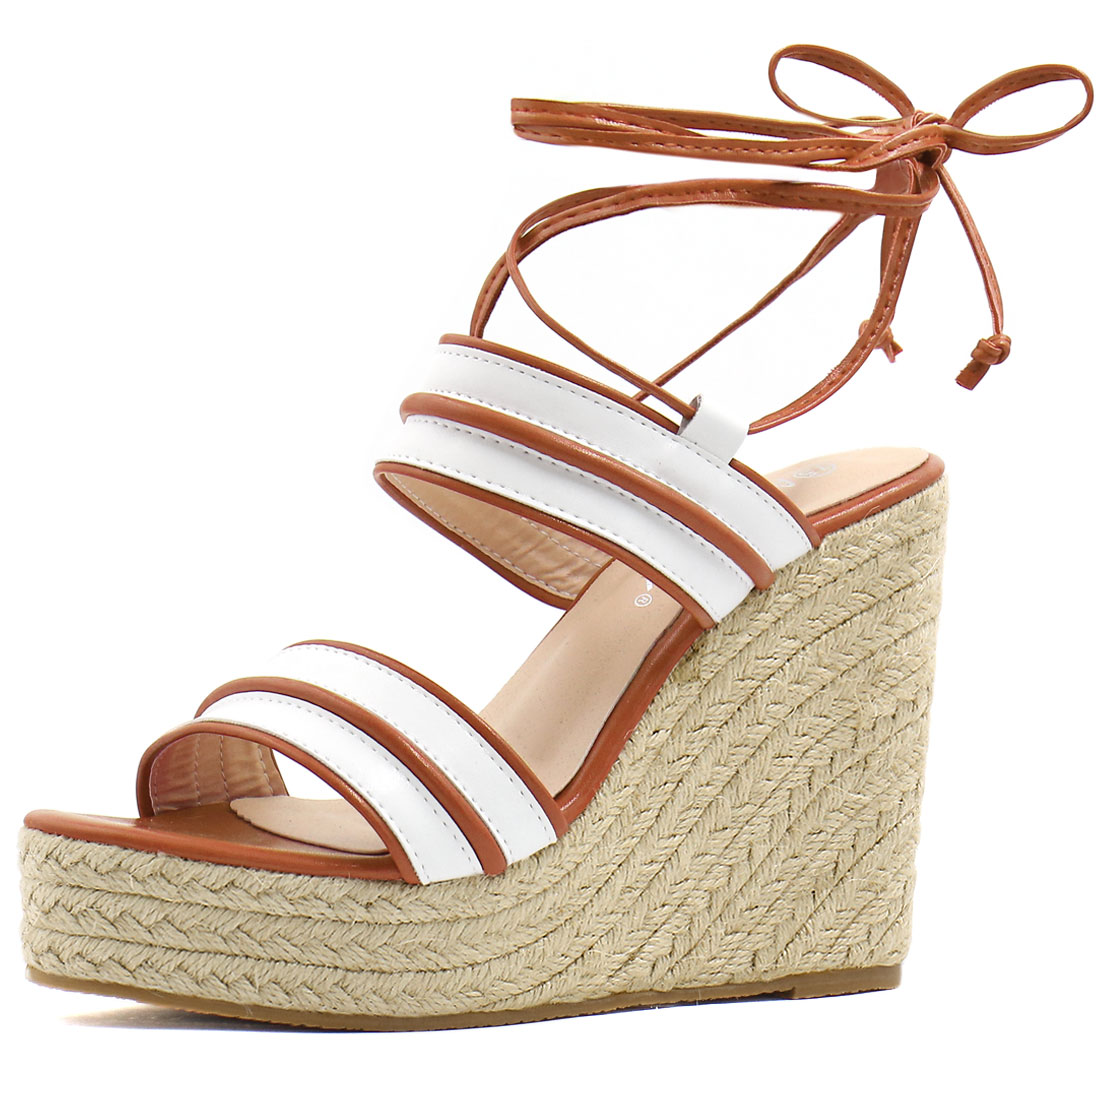 Women Striped Ankle Tie Espadrille Wedge Sandals White Camel US 7.5